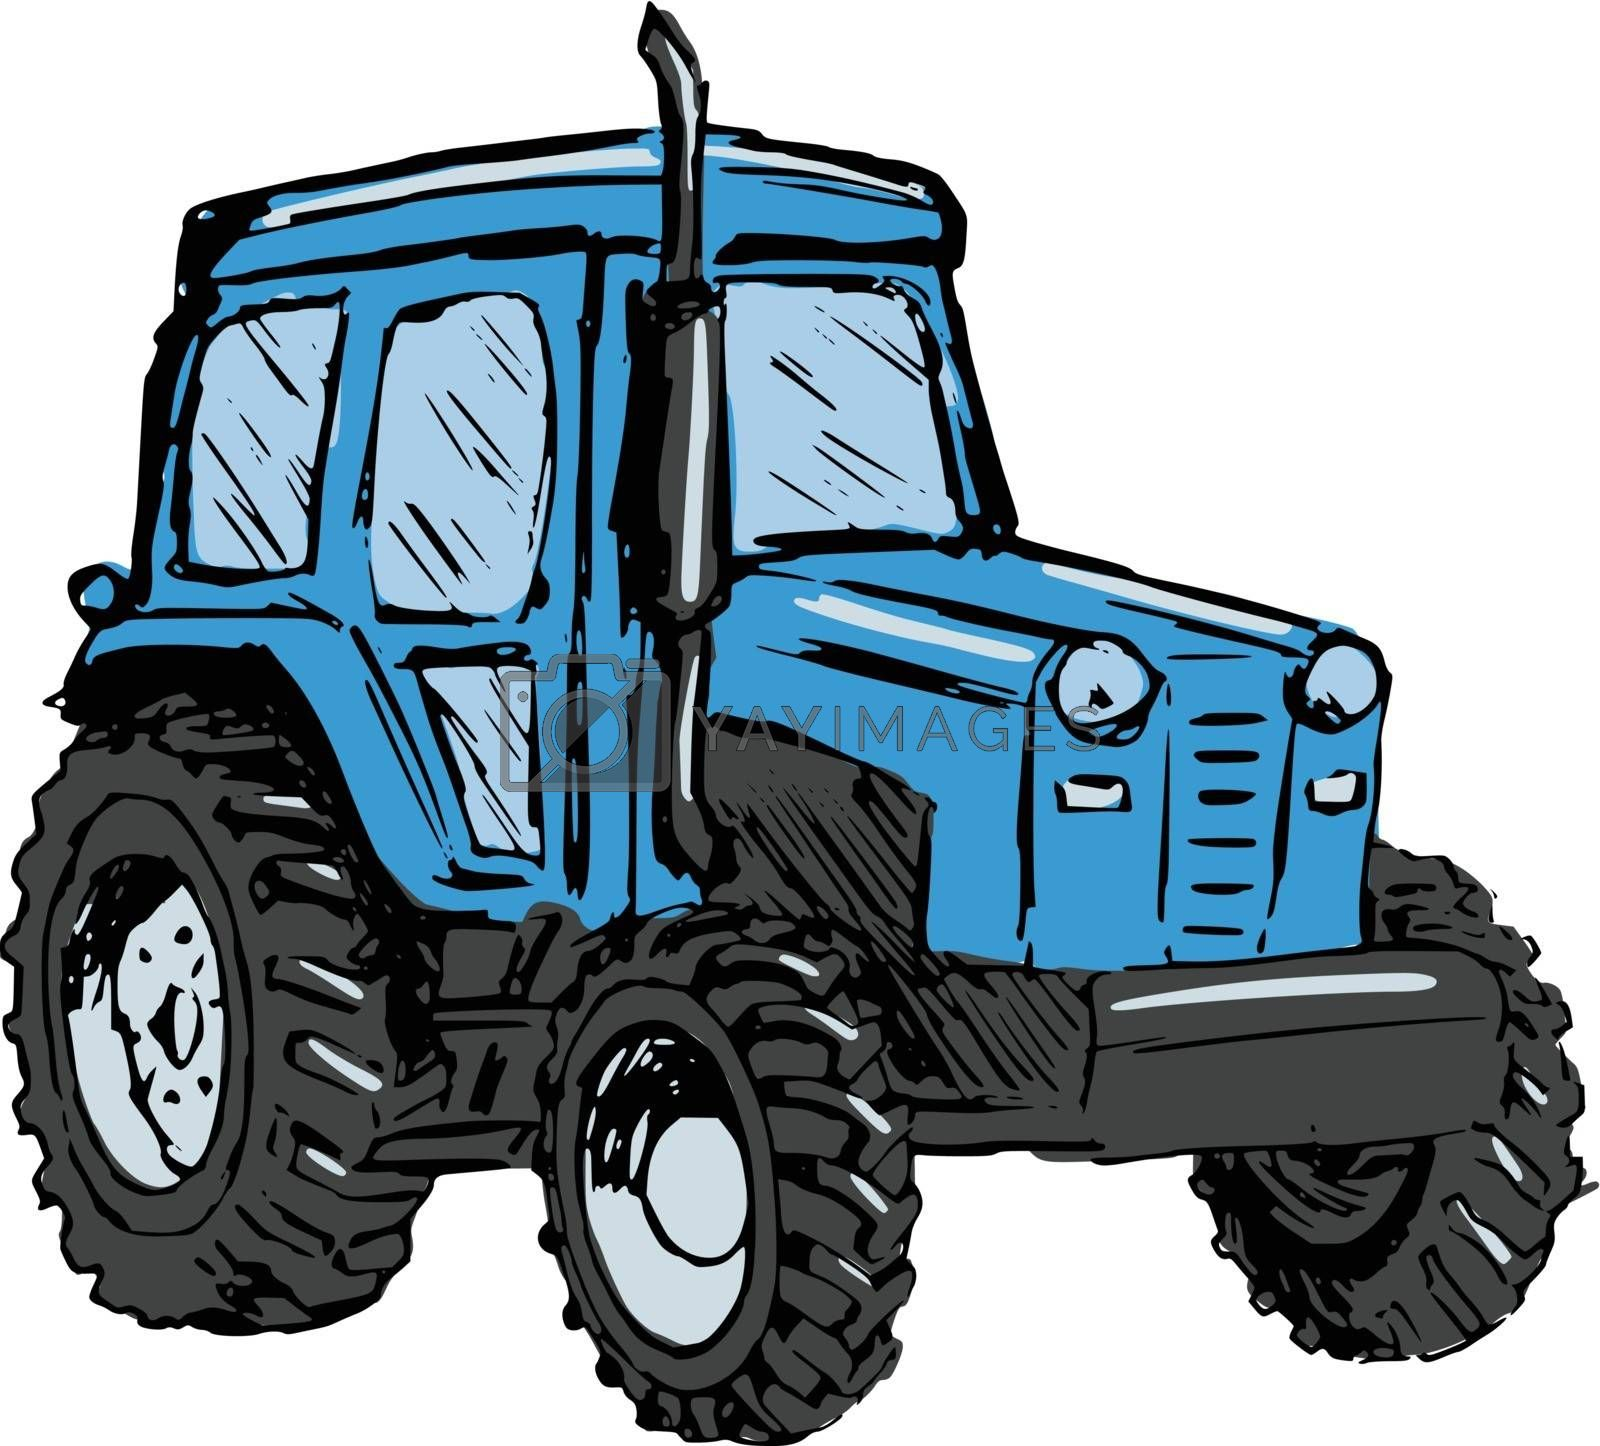 Royalty free image of tractor by Perysty